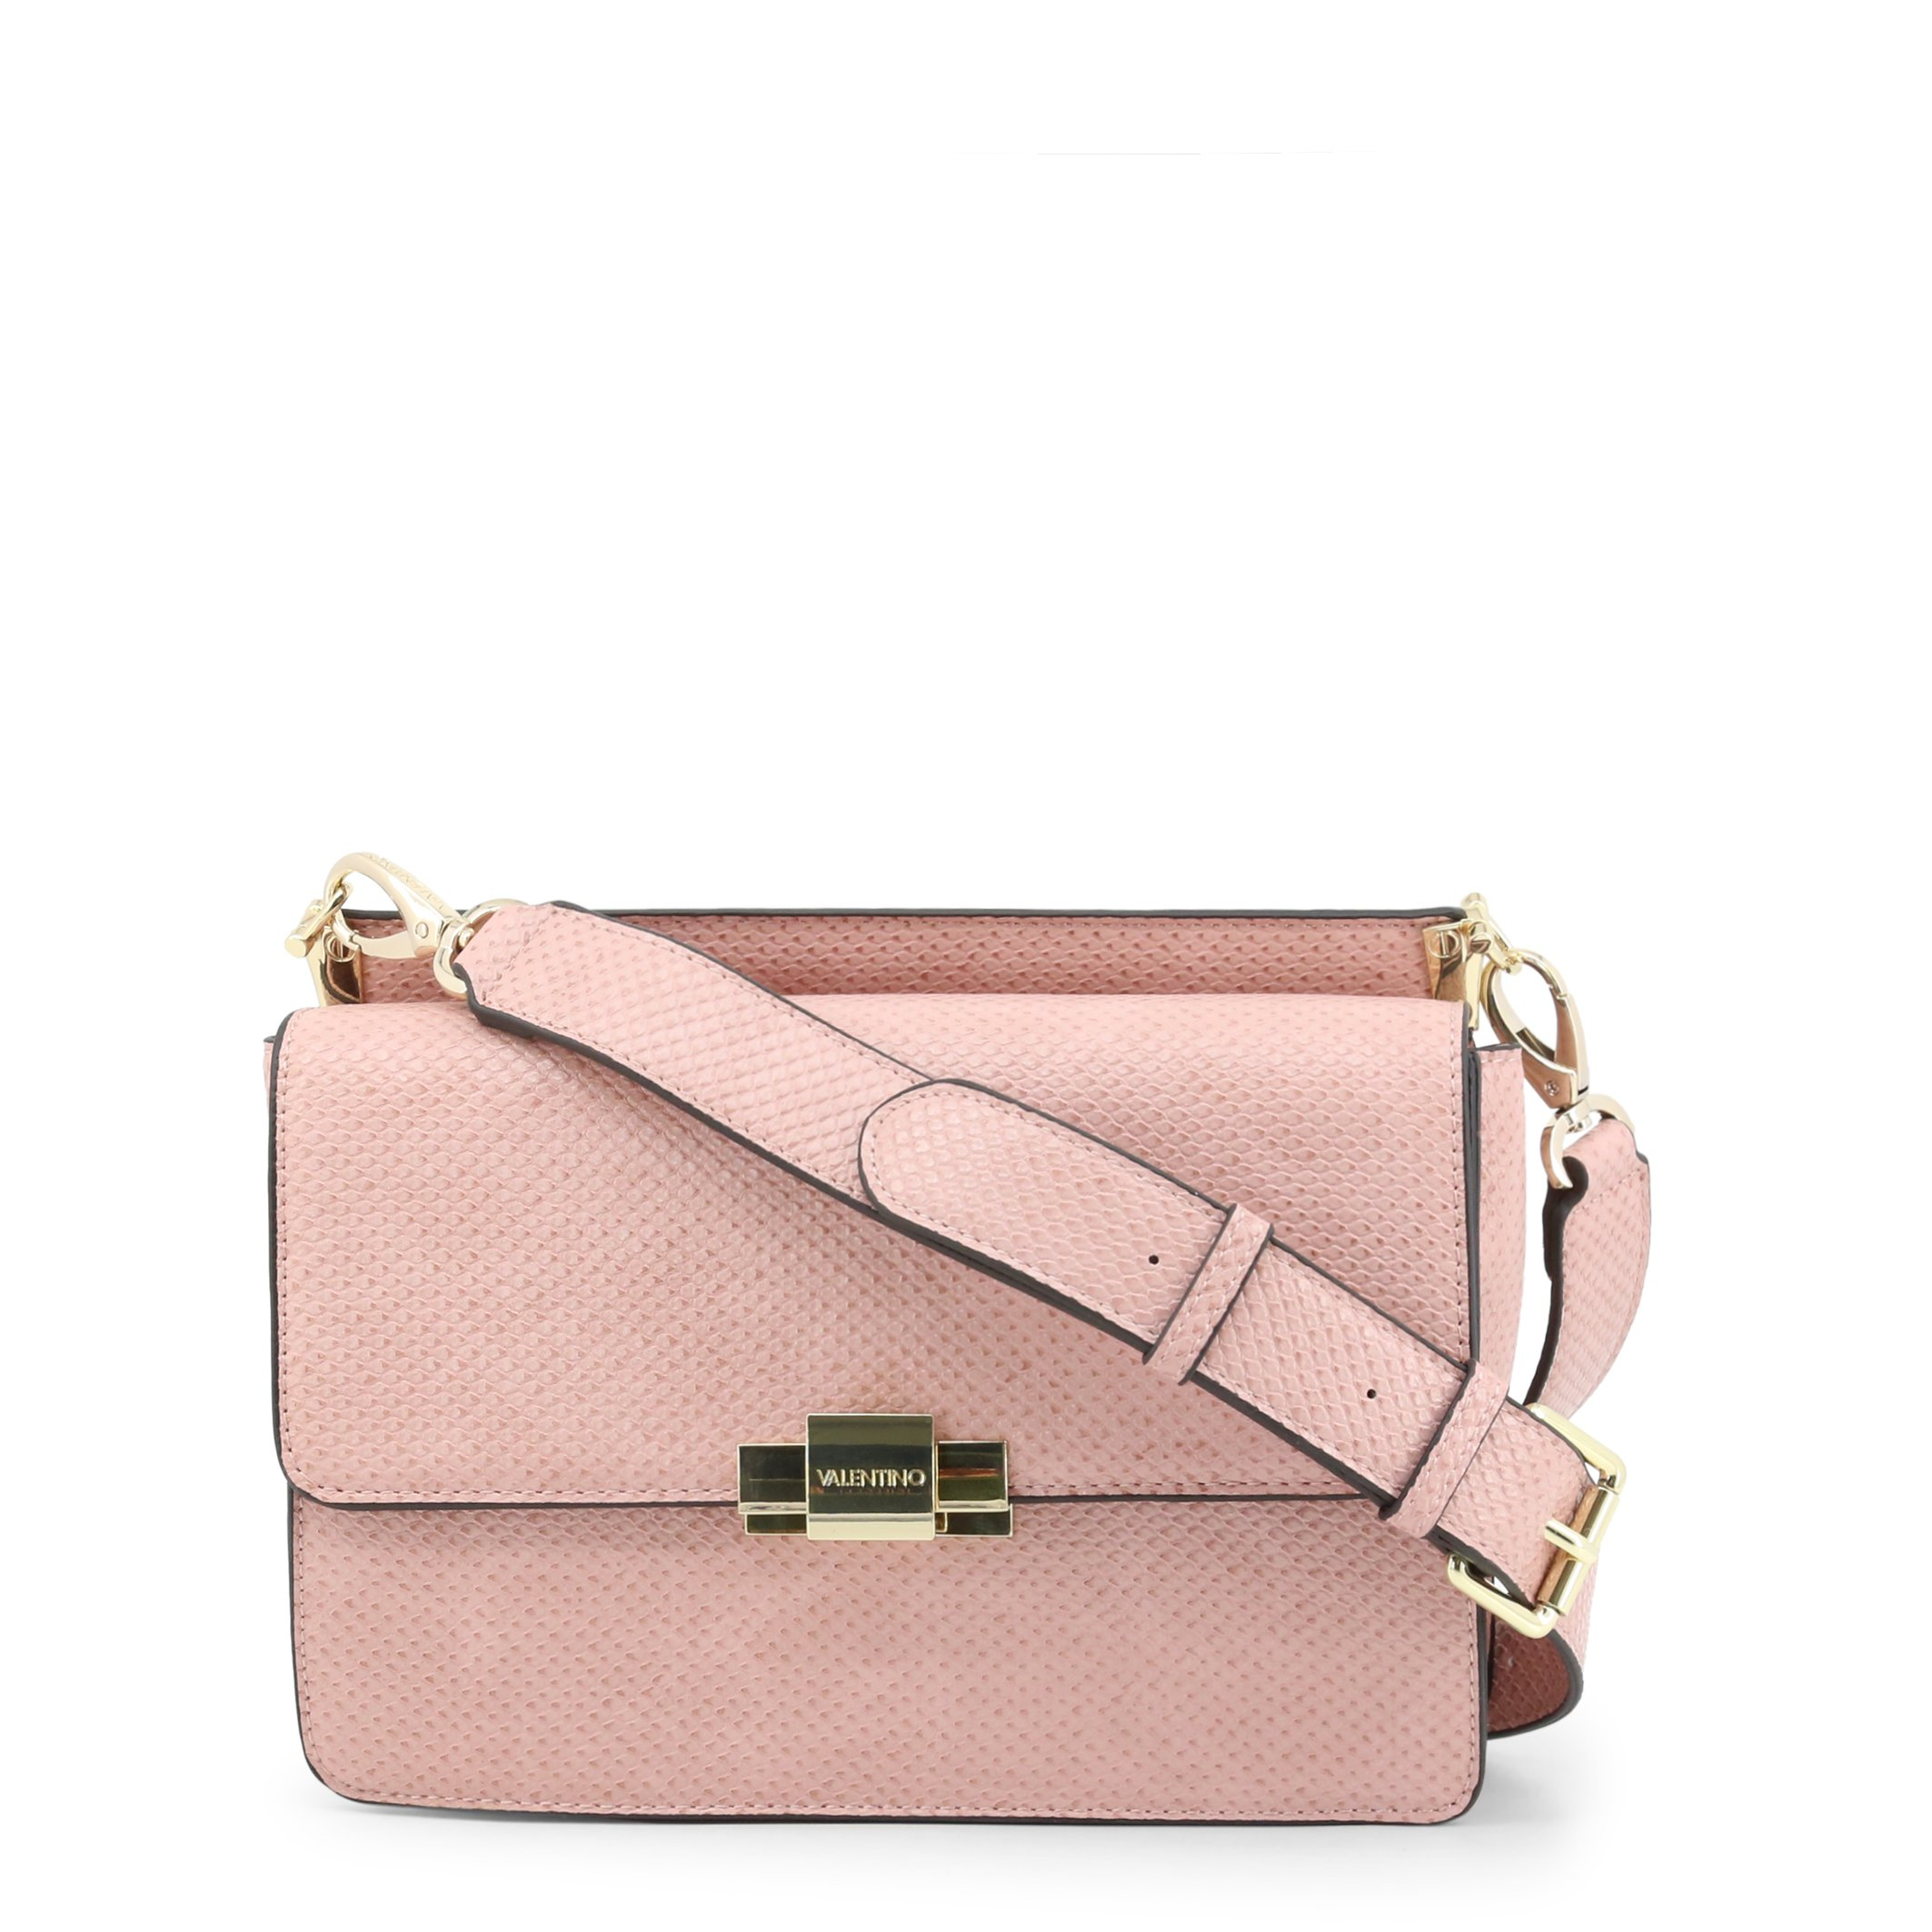 Valentino by Mario Valentino Women's Clutch Bag Various Colours ROSALIE-VBS4NE01 - pink NOSIZE